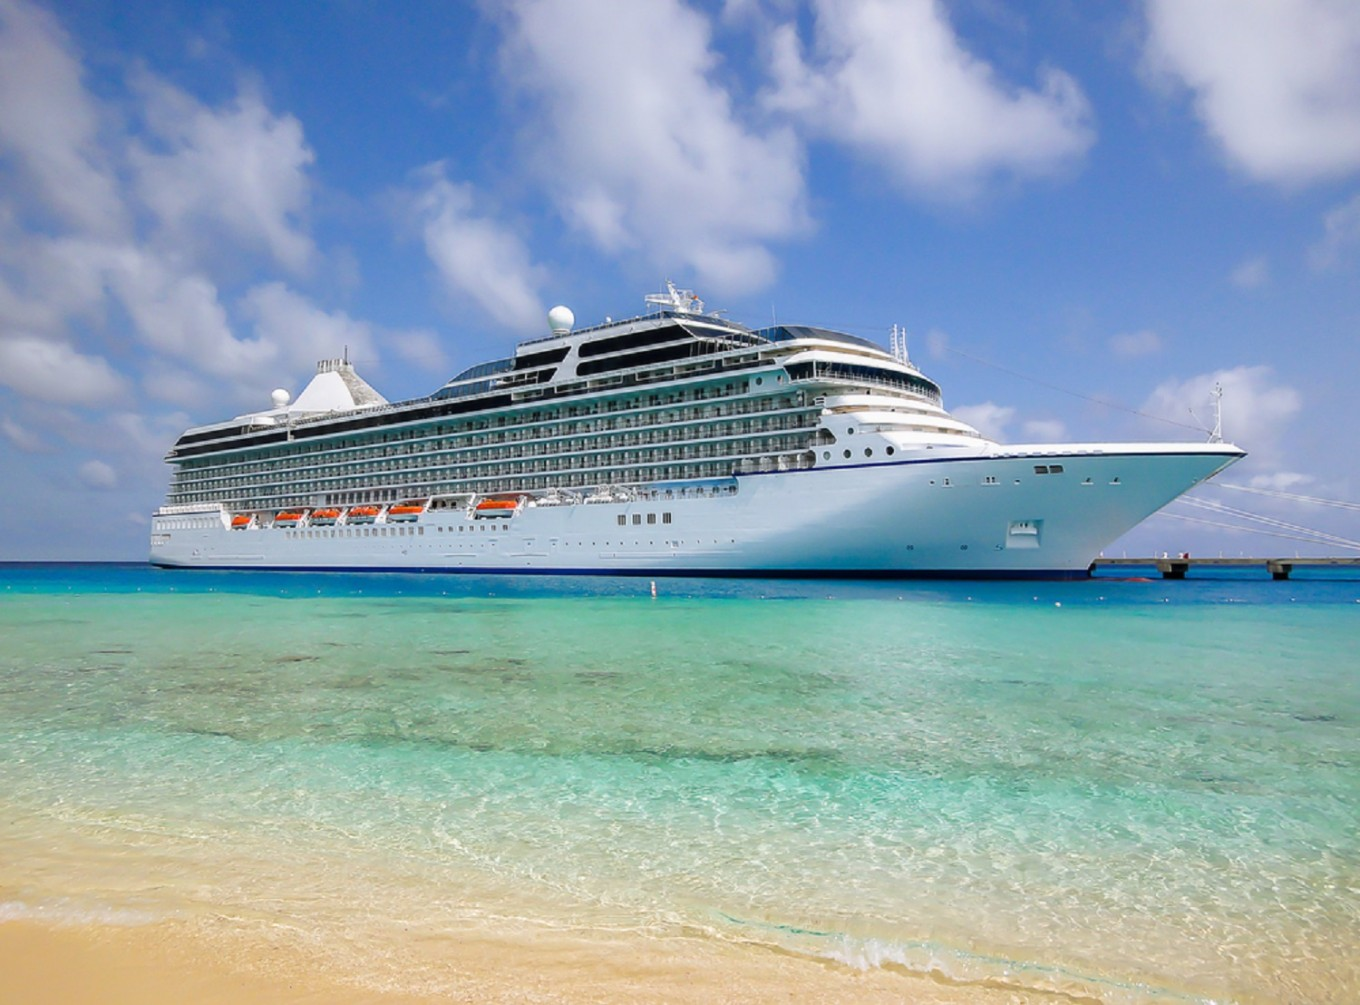 CEO Showers Employees With Lavish Caribbean Cruise Lifestyle - Cruise ship caribbean